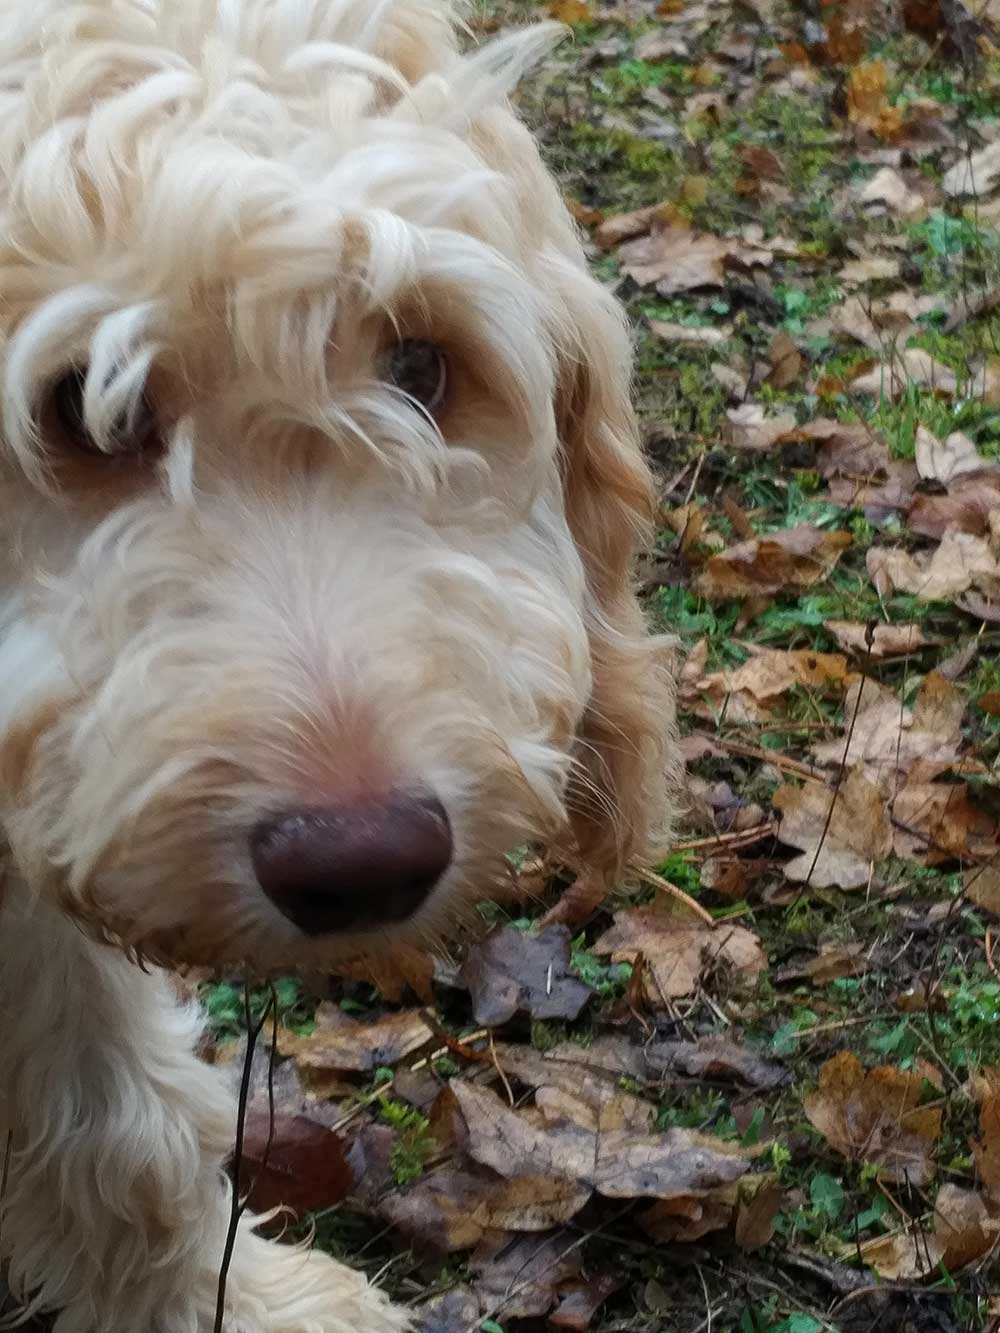 Bobby's irresistible puppy face — no wonder Julie was so excited about his imminent arrival